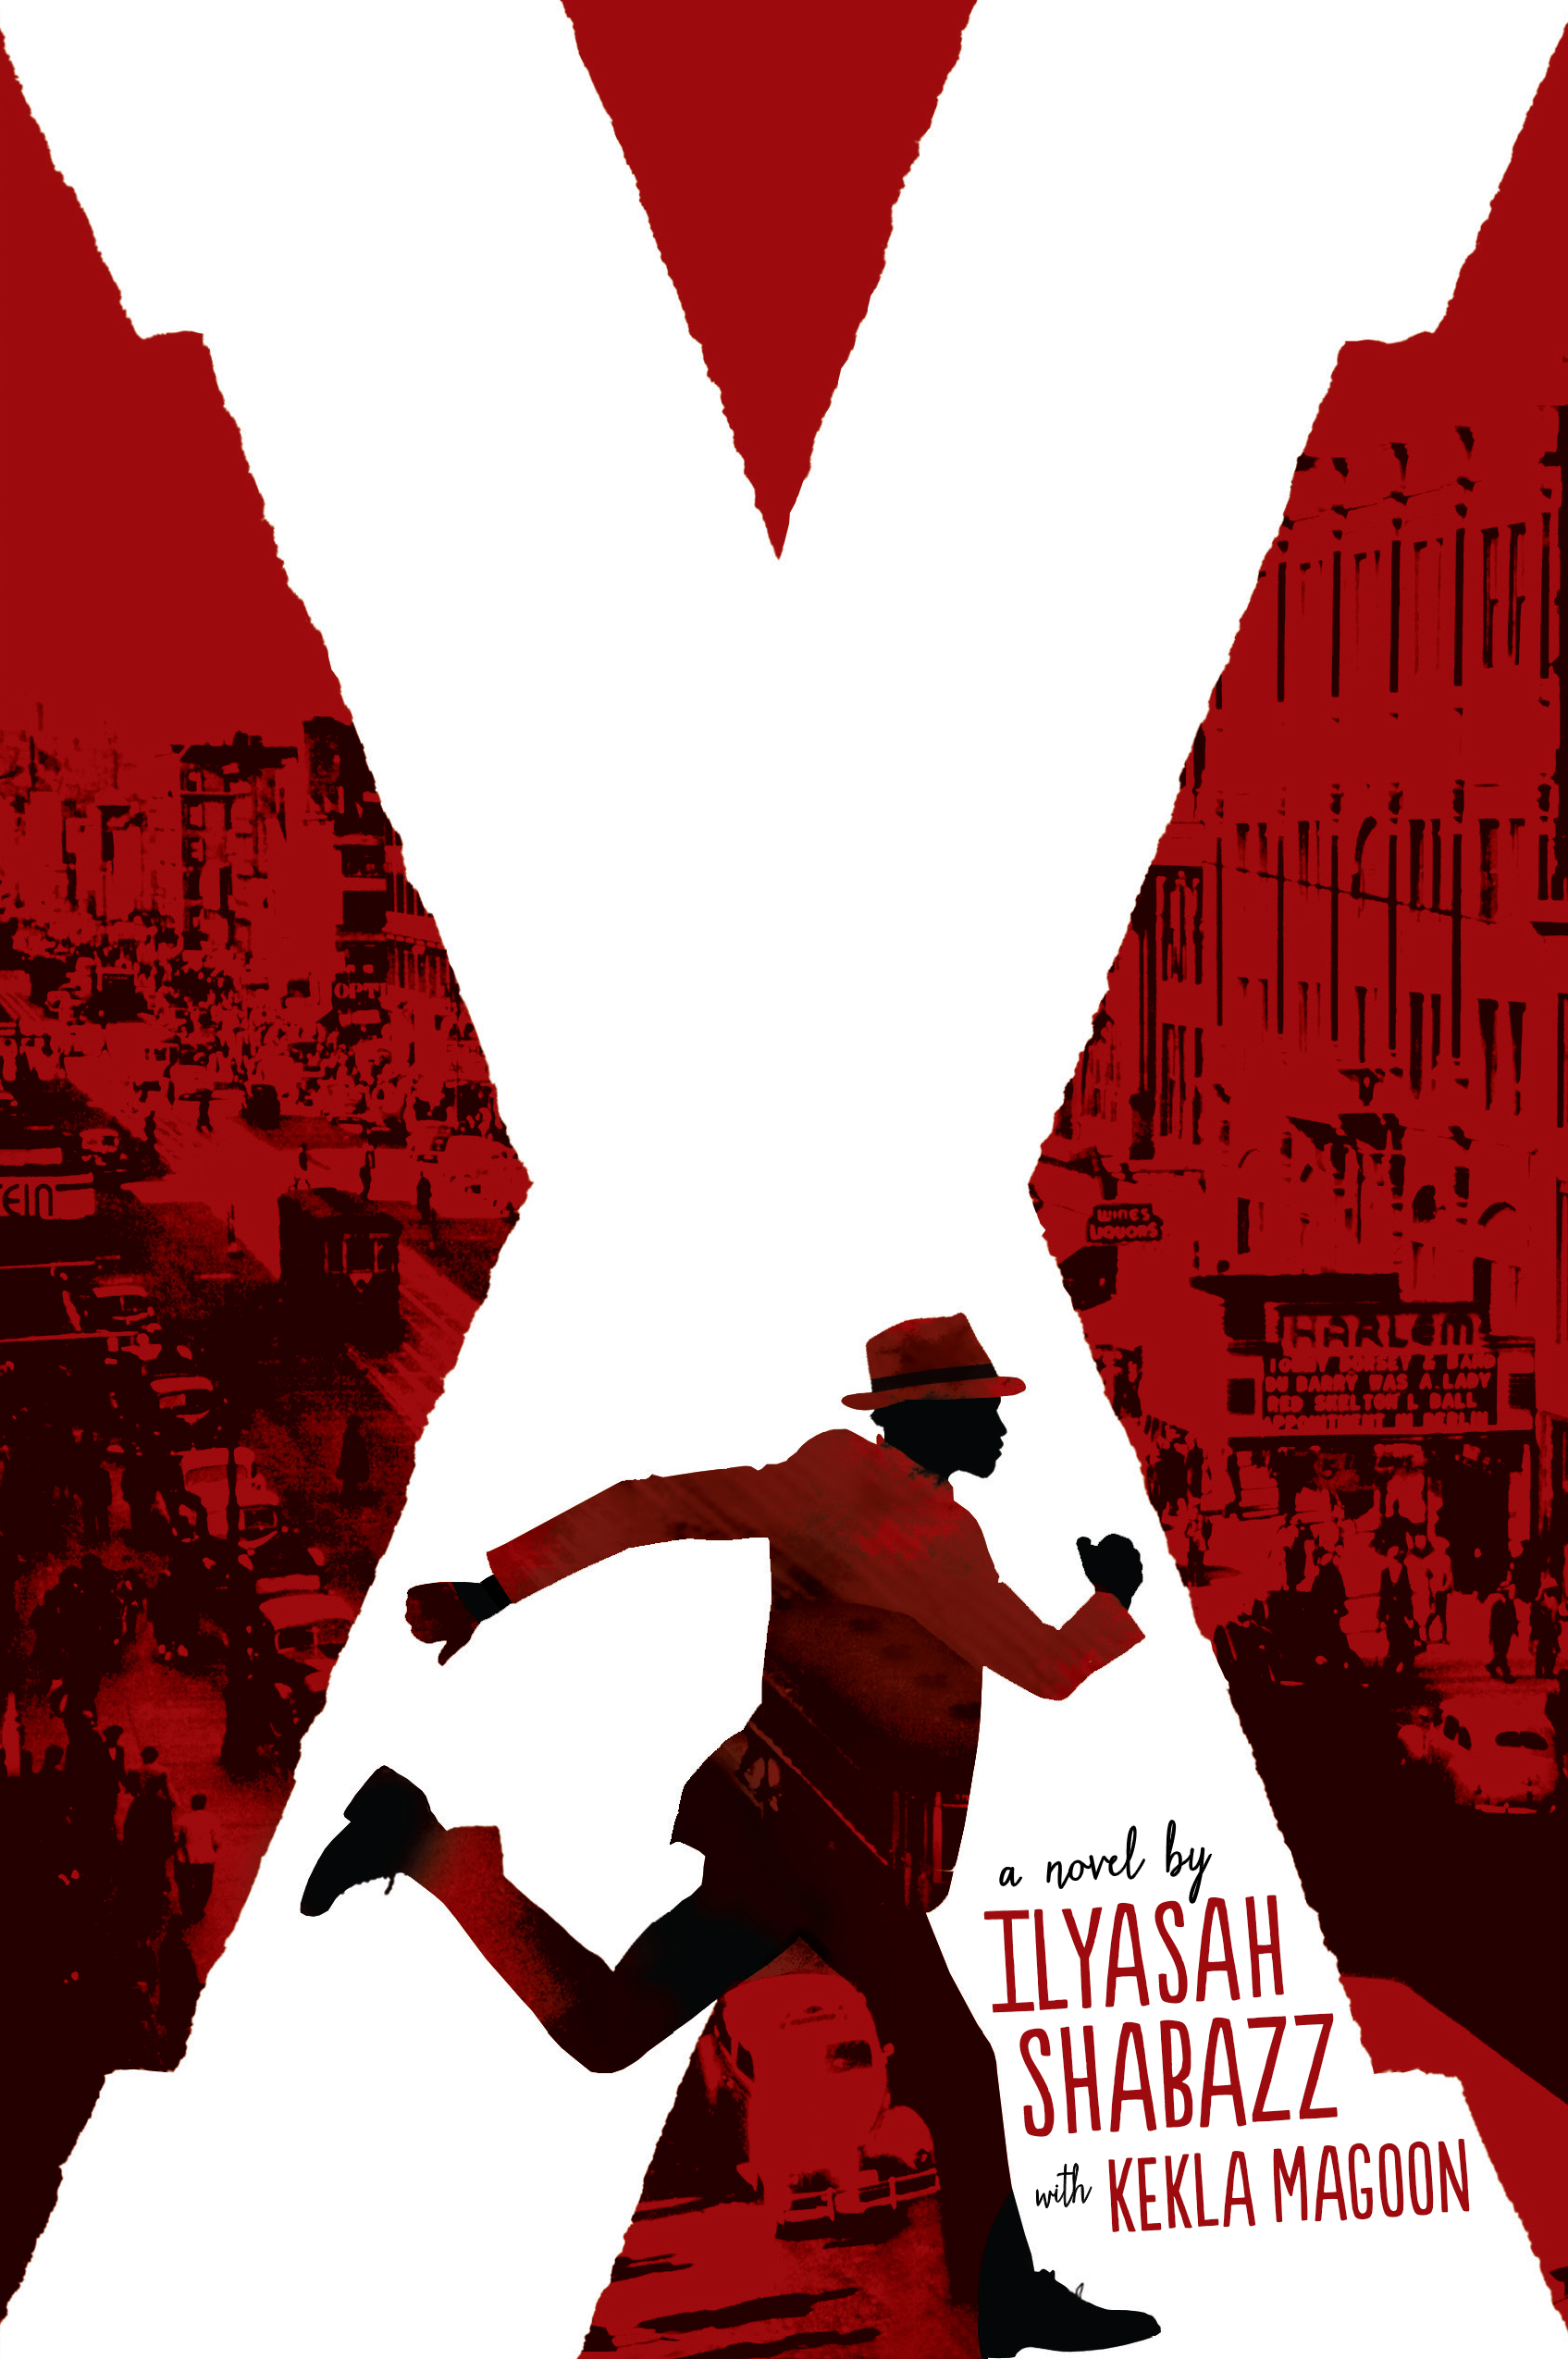 x a novel by ilyasah shabazz with kekla magoon book cover